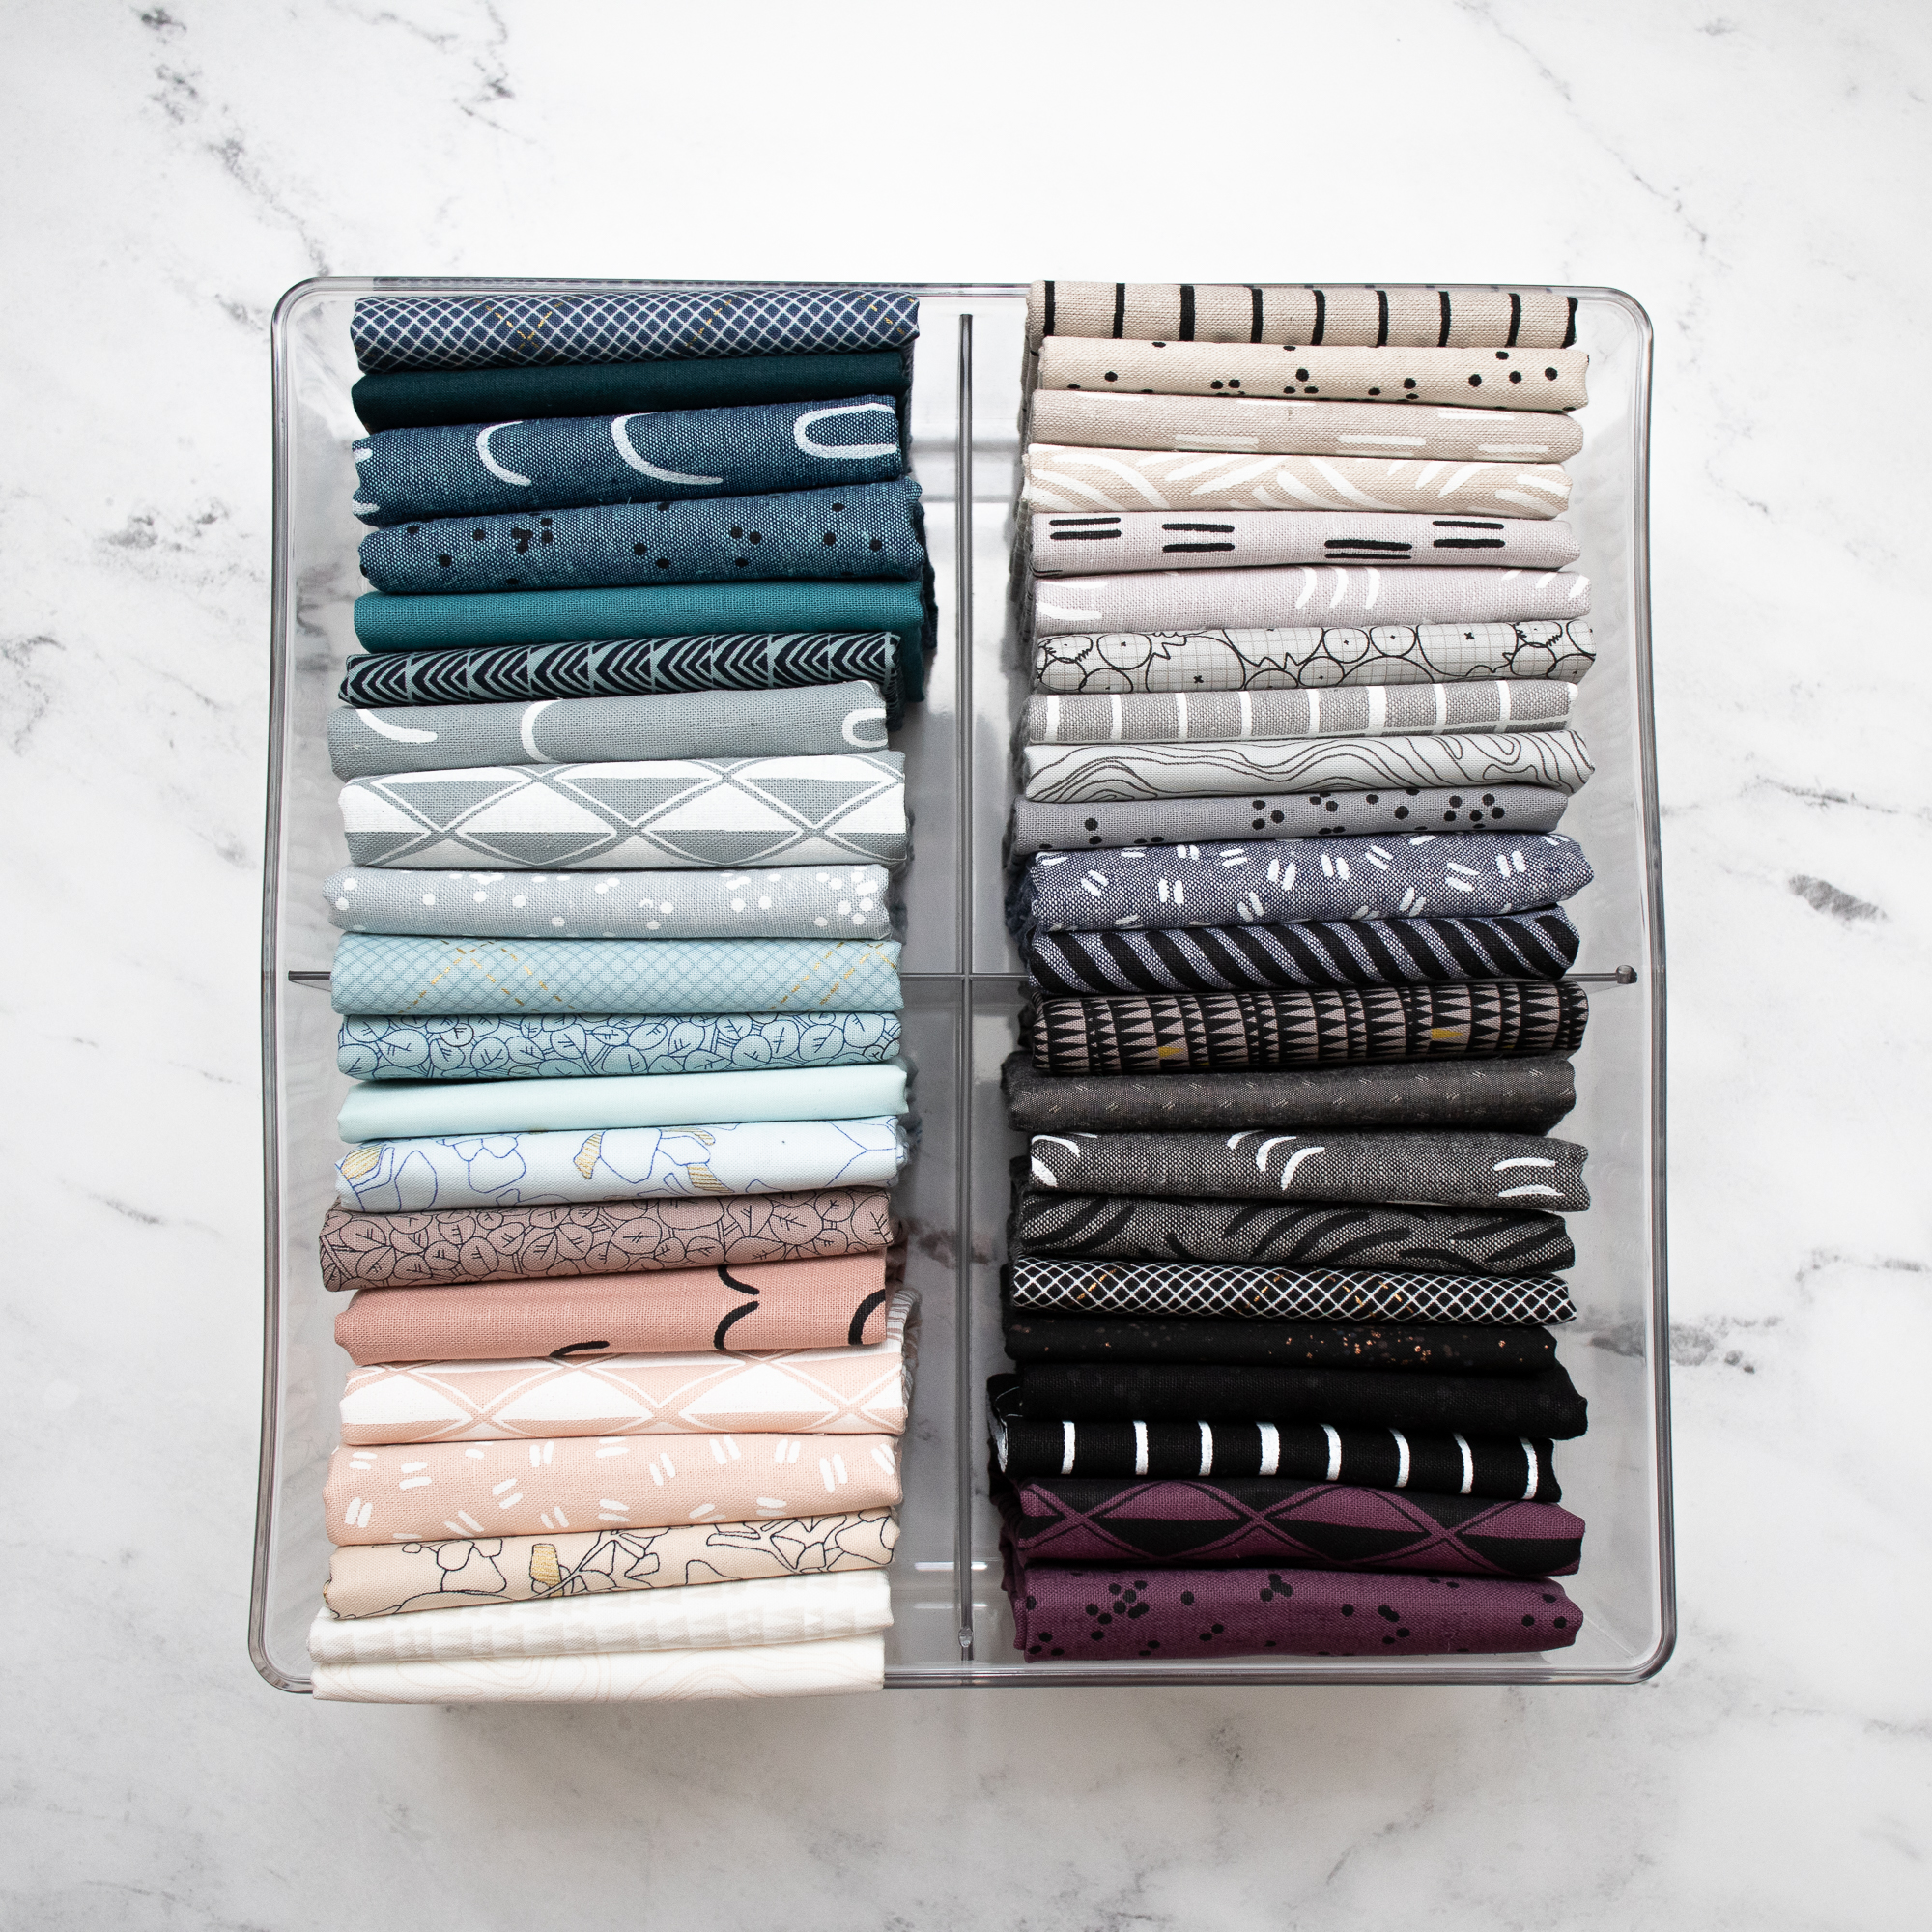 Simple steps for quilting fabric organization that can be easily adapted to your unique sewing room and fabric stash. Follow these steps with photo examples, links to resources and supplies, and tips to start organizing your fabric stash today. #suzyquilts #quilting suzyquilts.com